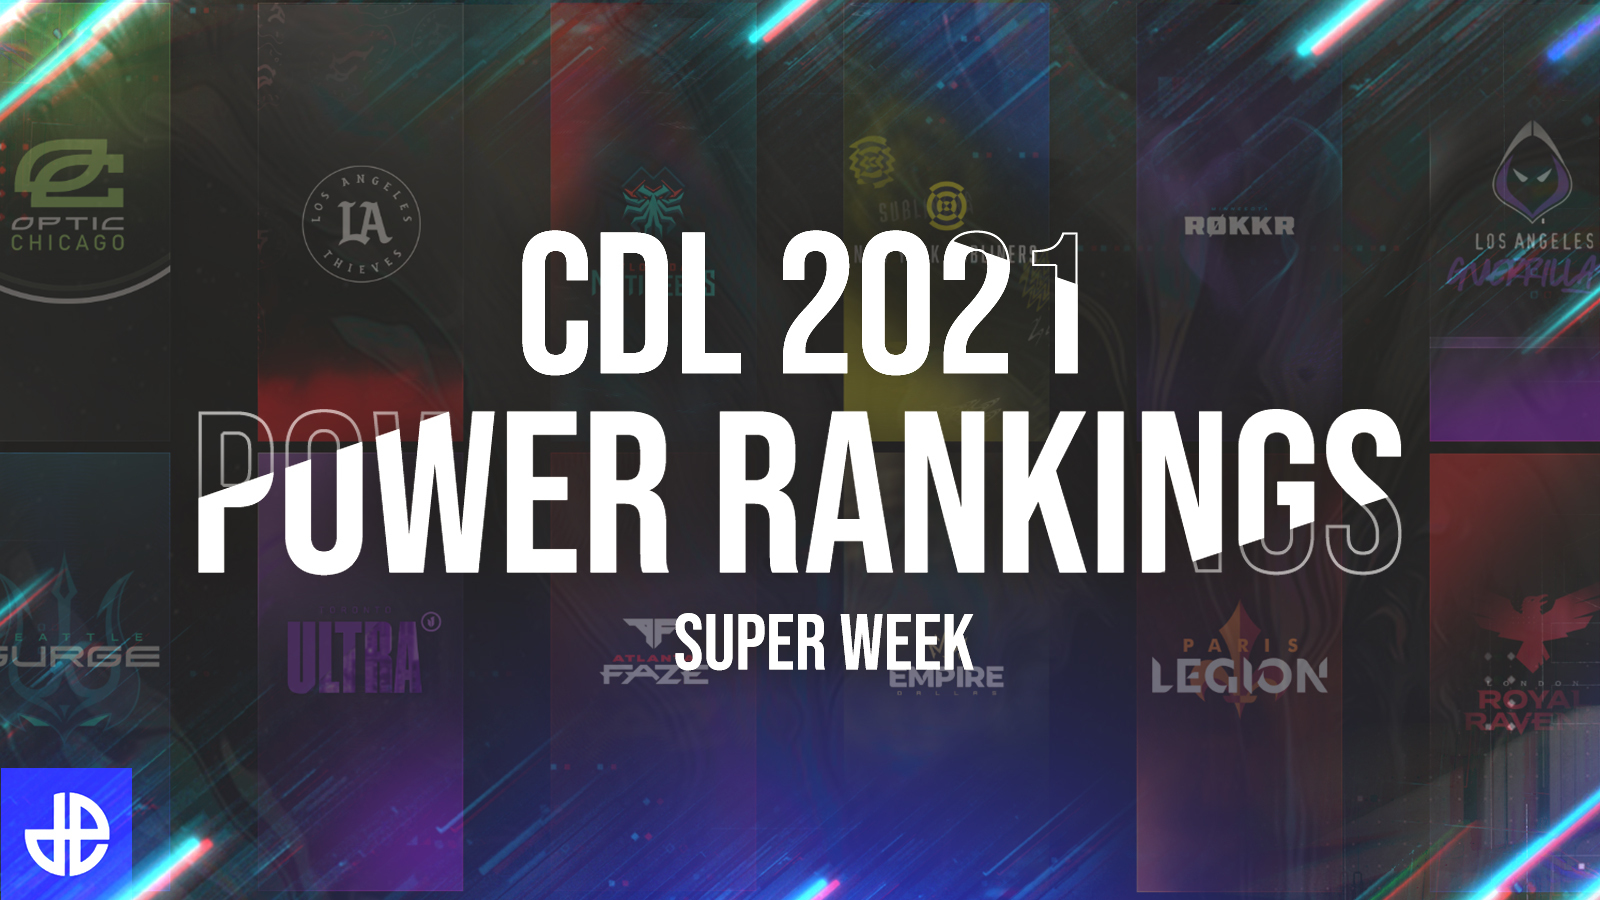 Call of Duty League CDL2021 Power Rankings